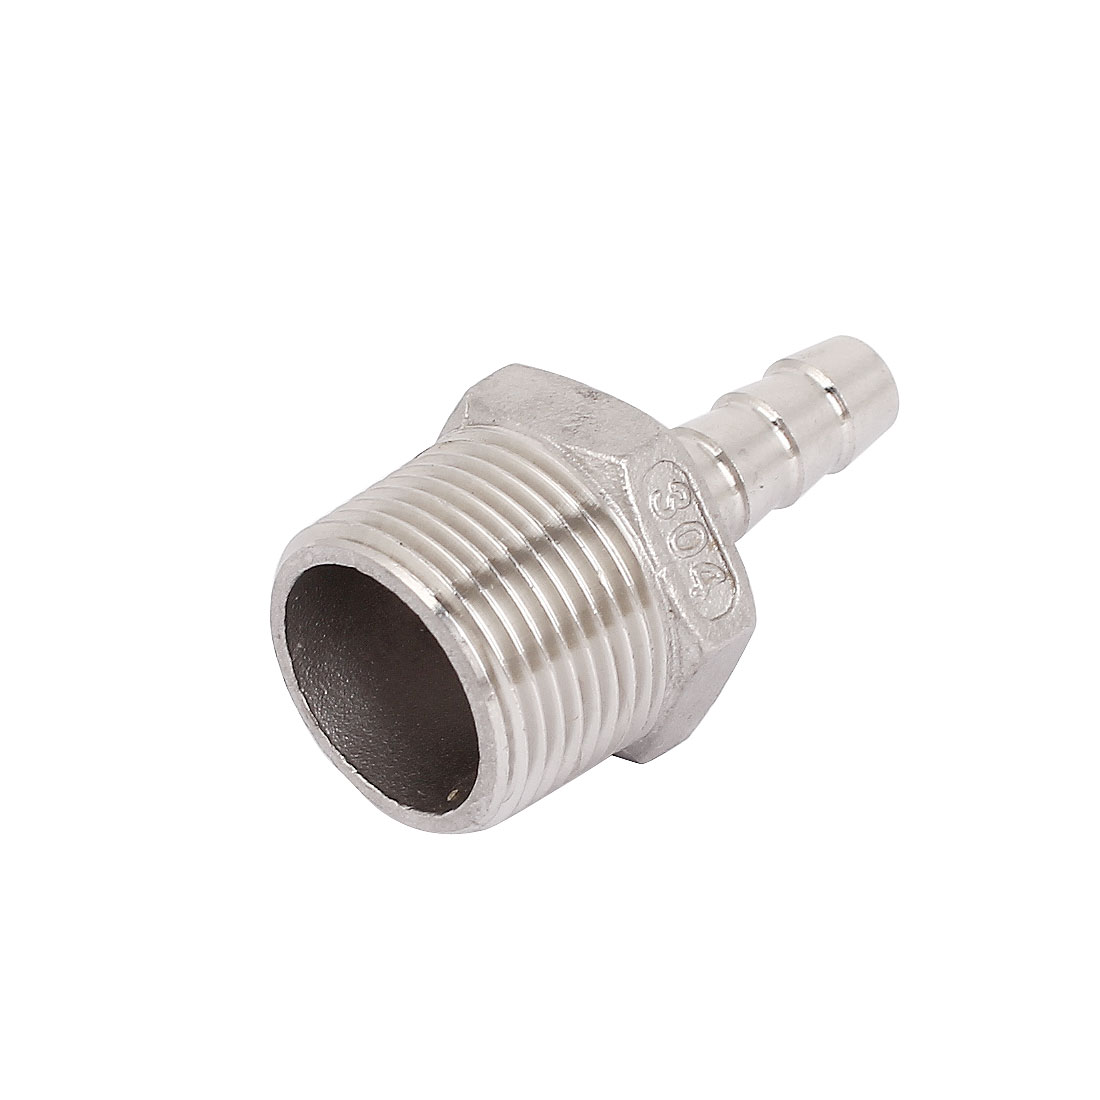 3/4BSP Male Thread to 10mm Hose Barb Straight Quick Fitting Adapter Coupler